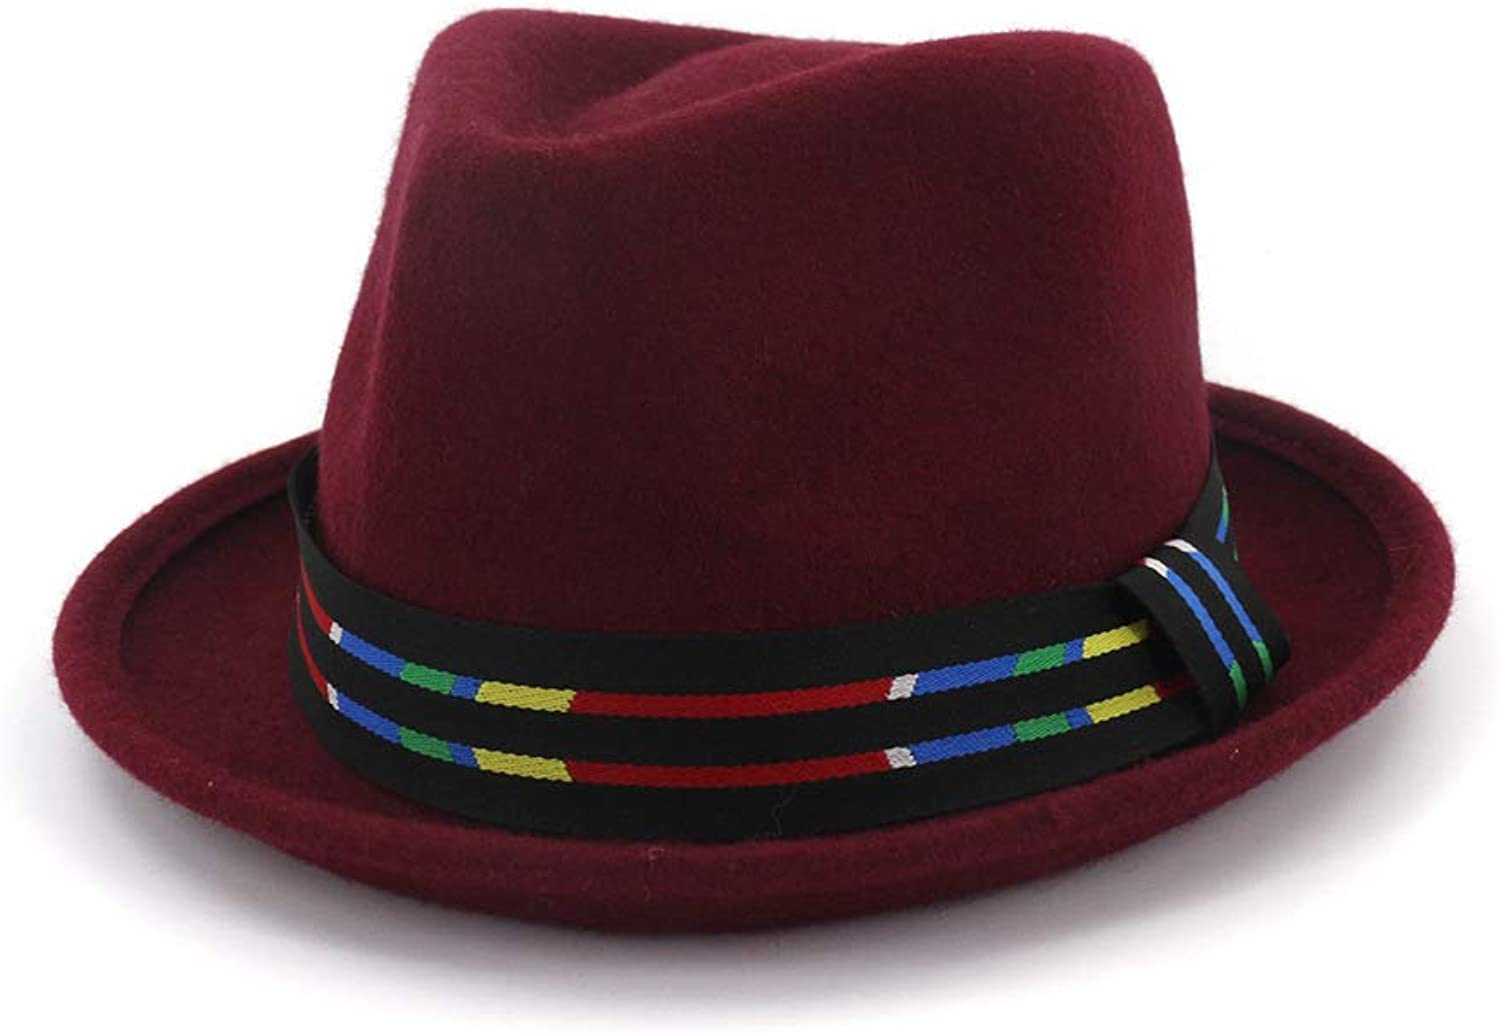 Ruiyue Fedora Lady Trilby Homburg Pure Wool Hat color Striped Jazz Small Hat for Women Men